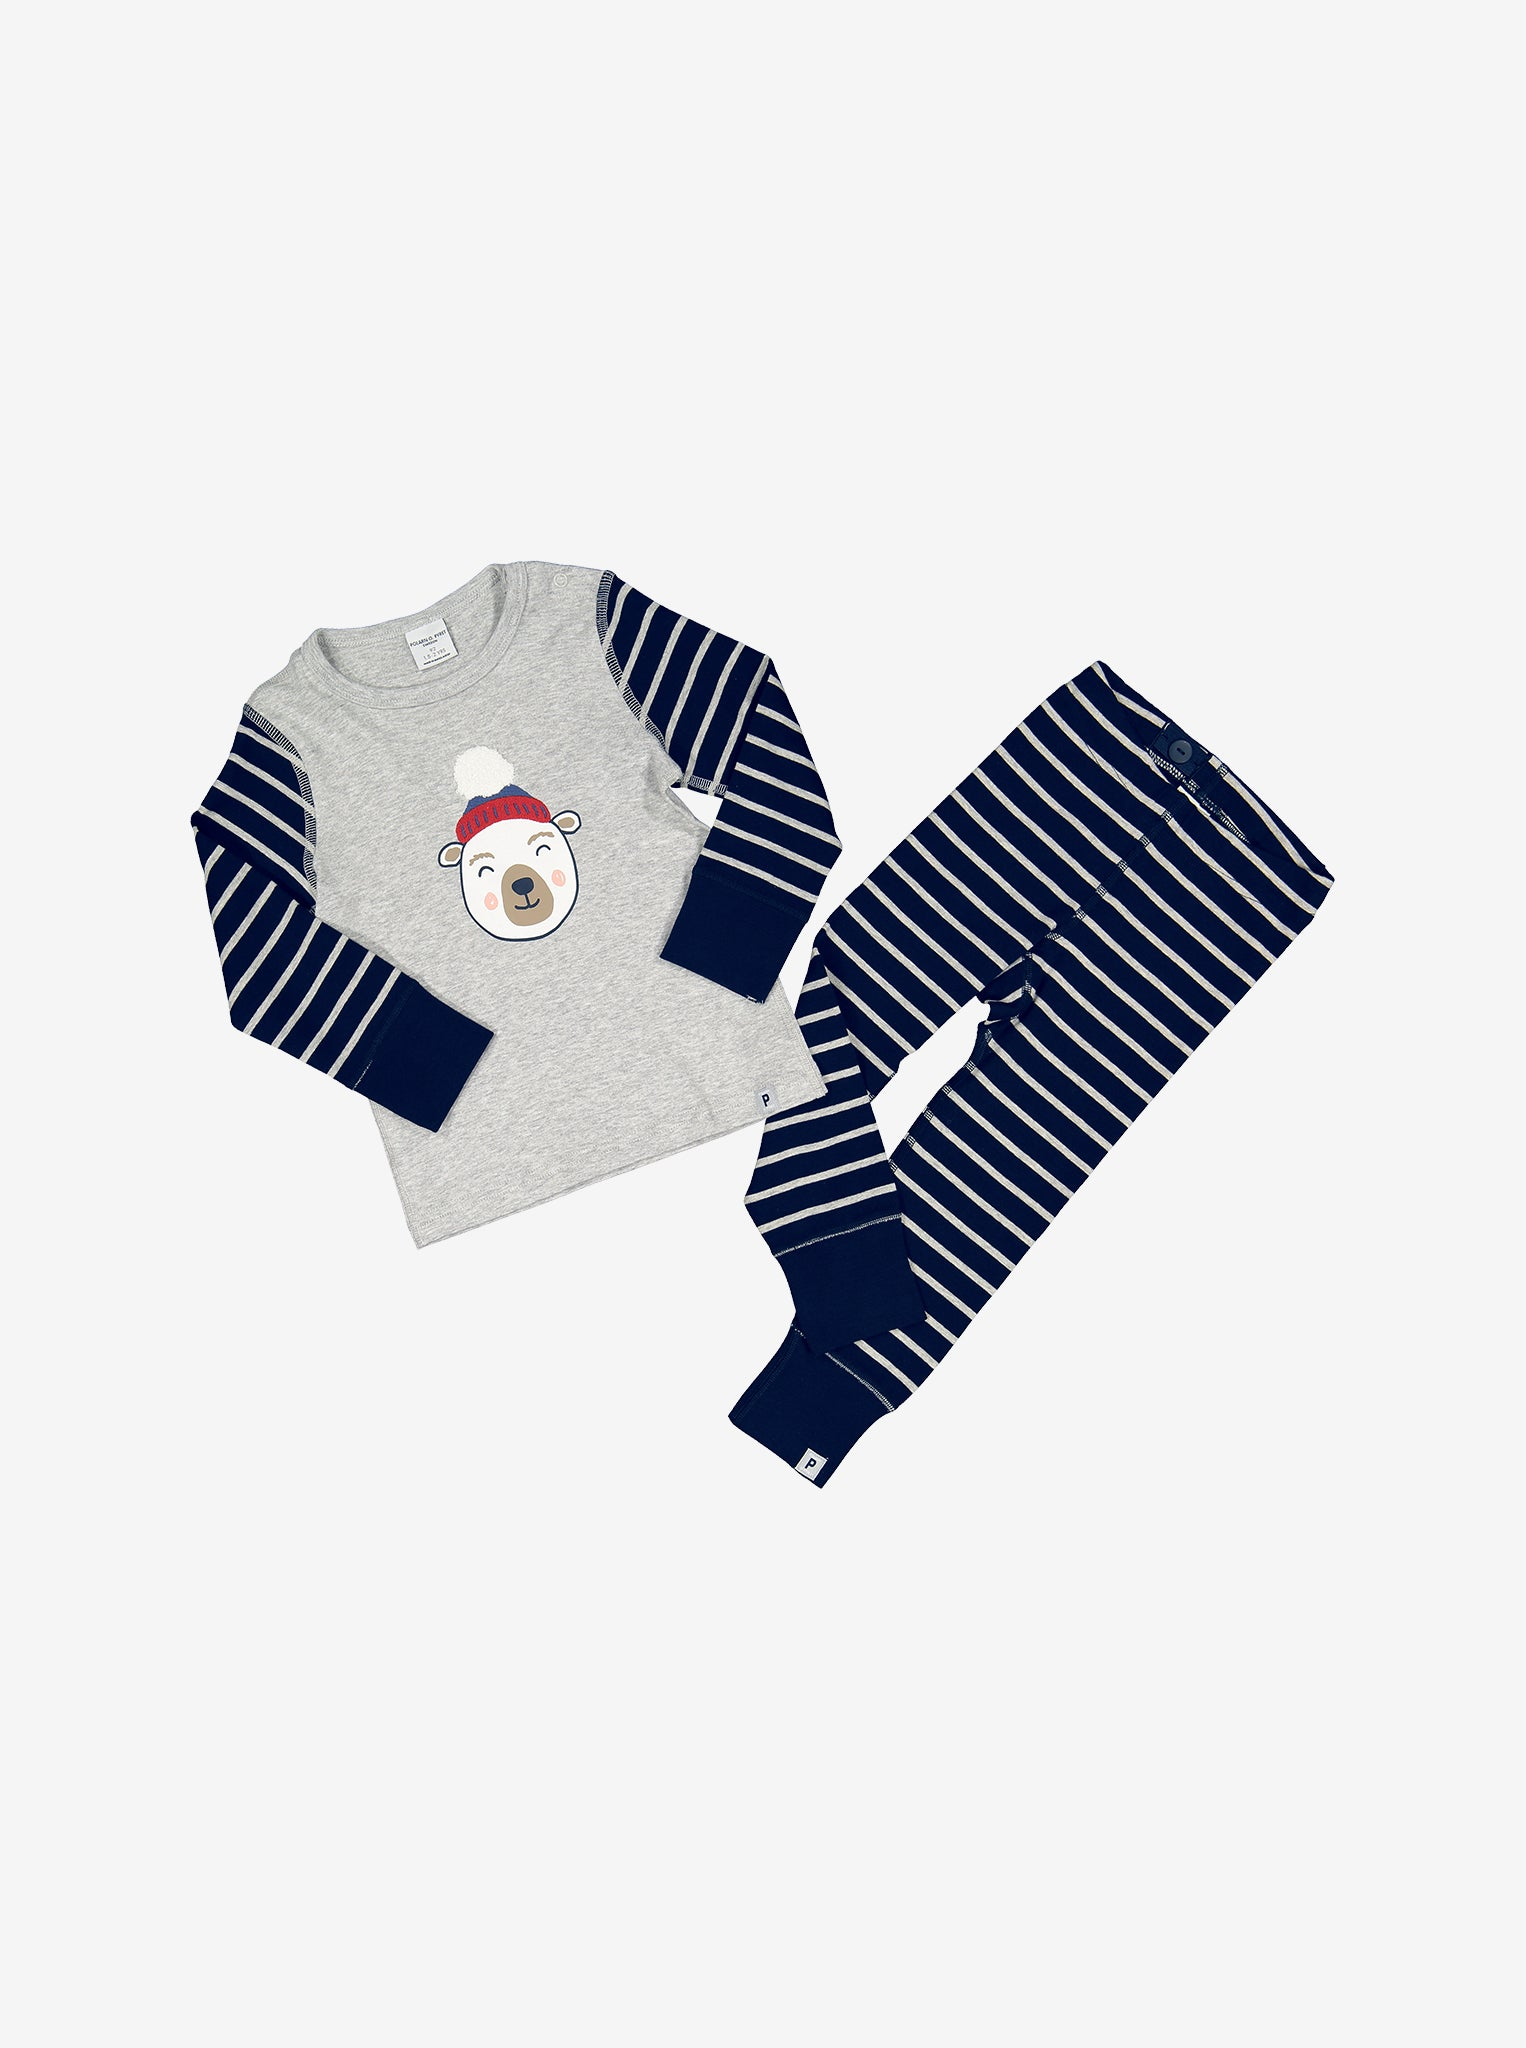 Polar Bear Kids Top